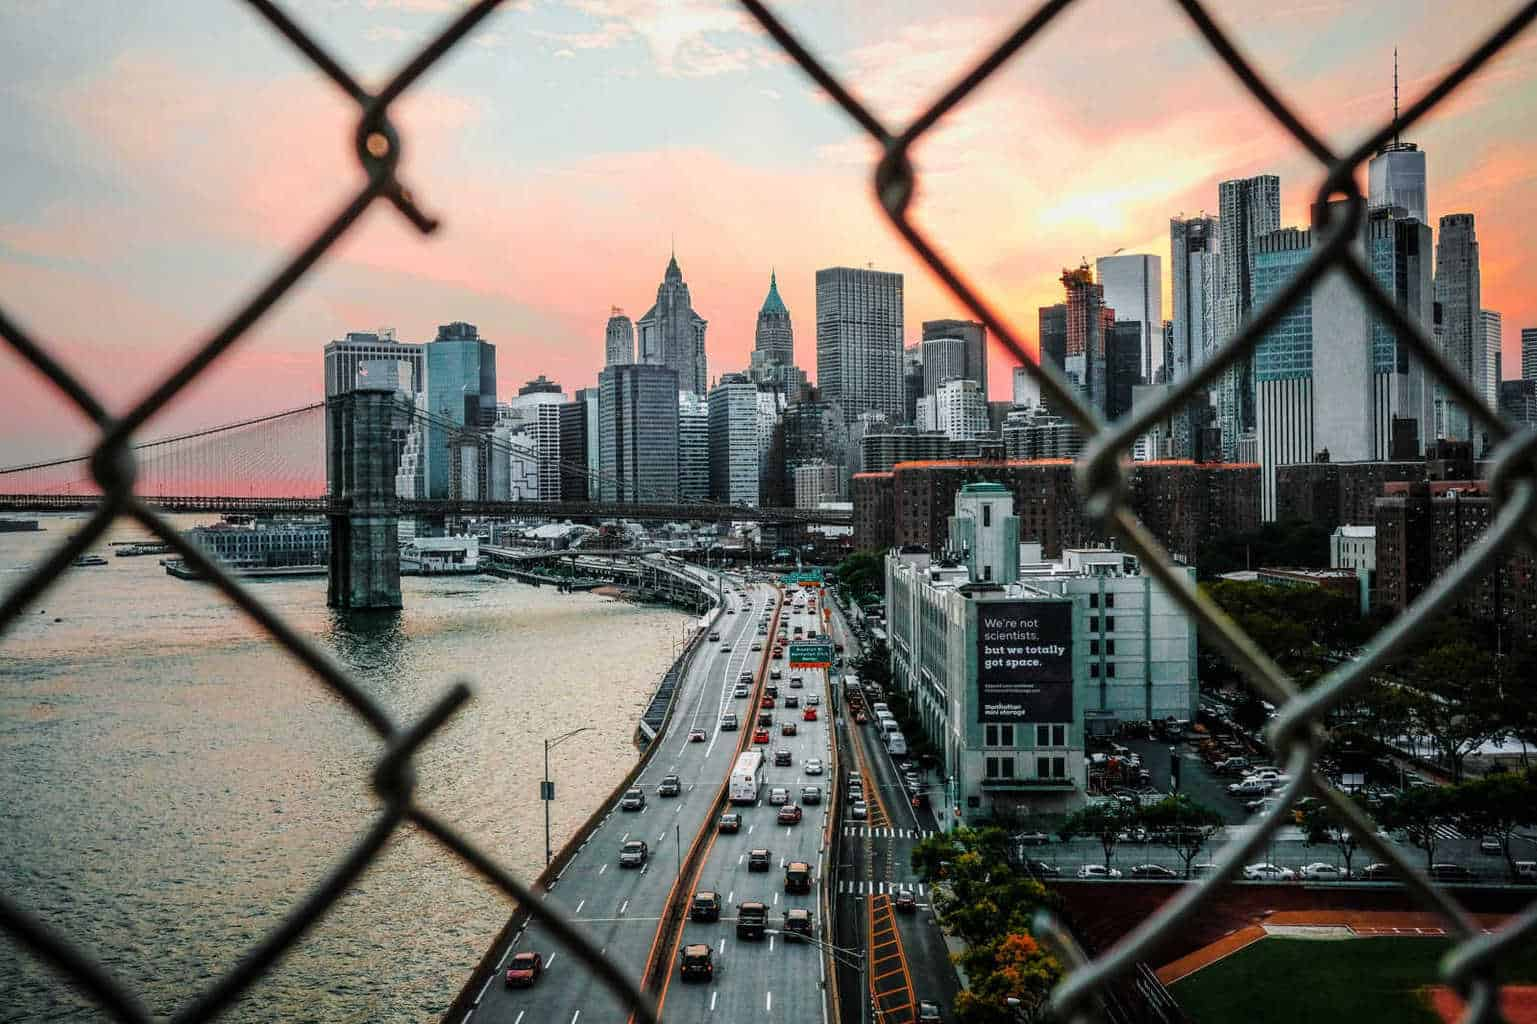 view of New York city through a fence